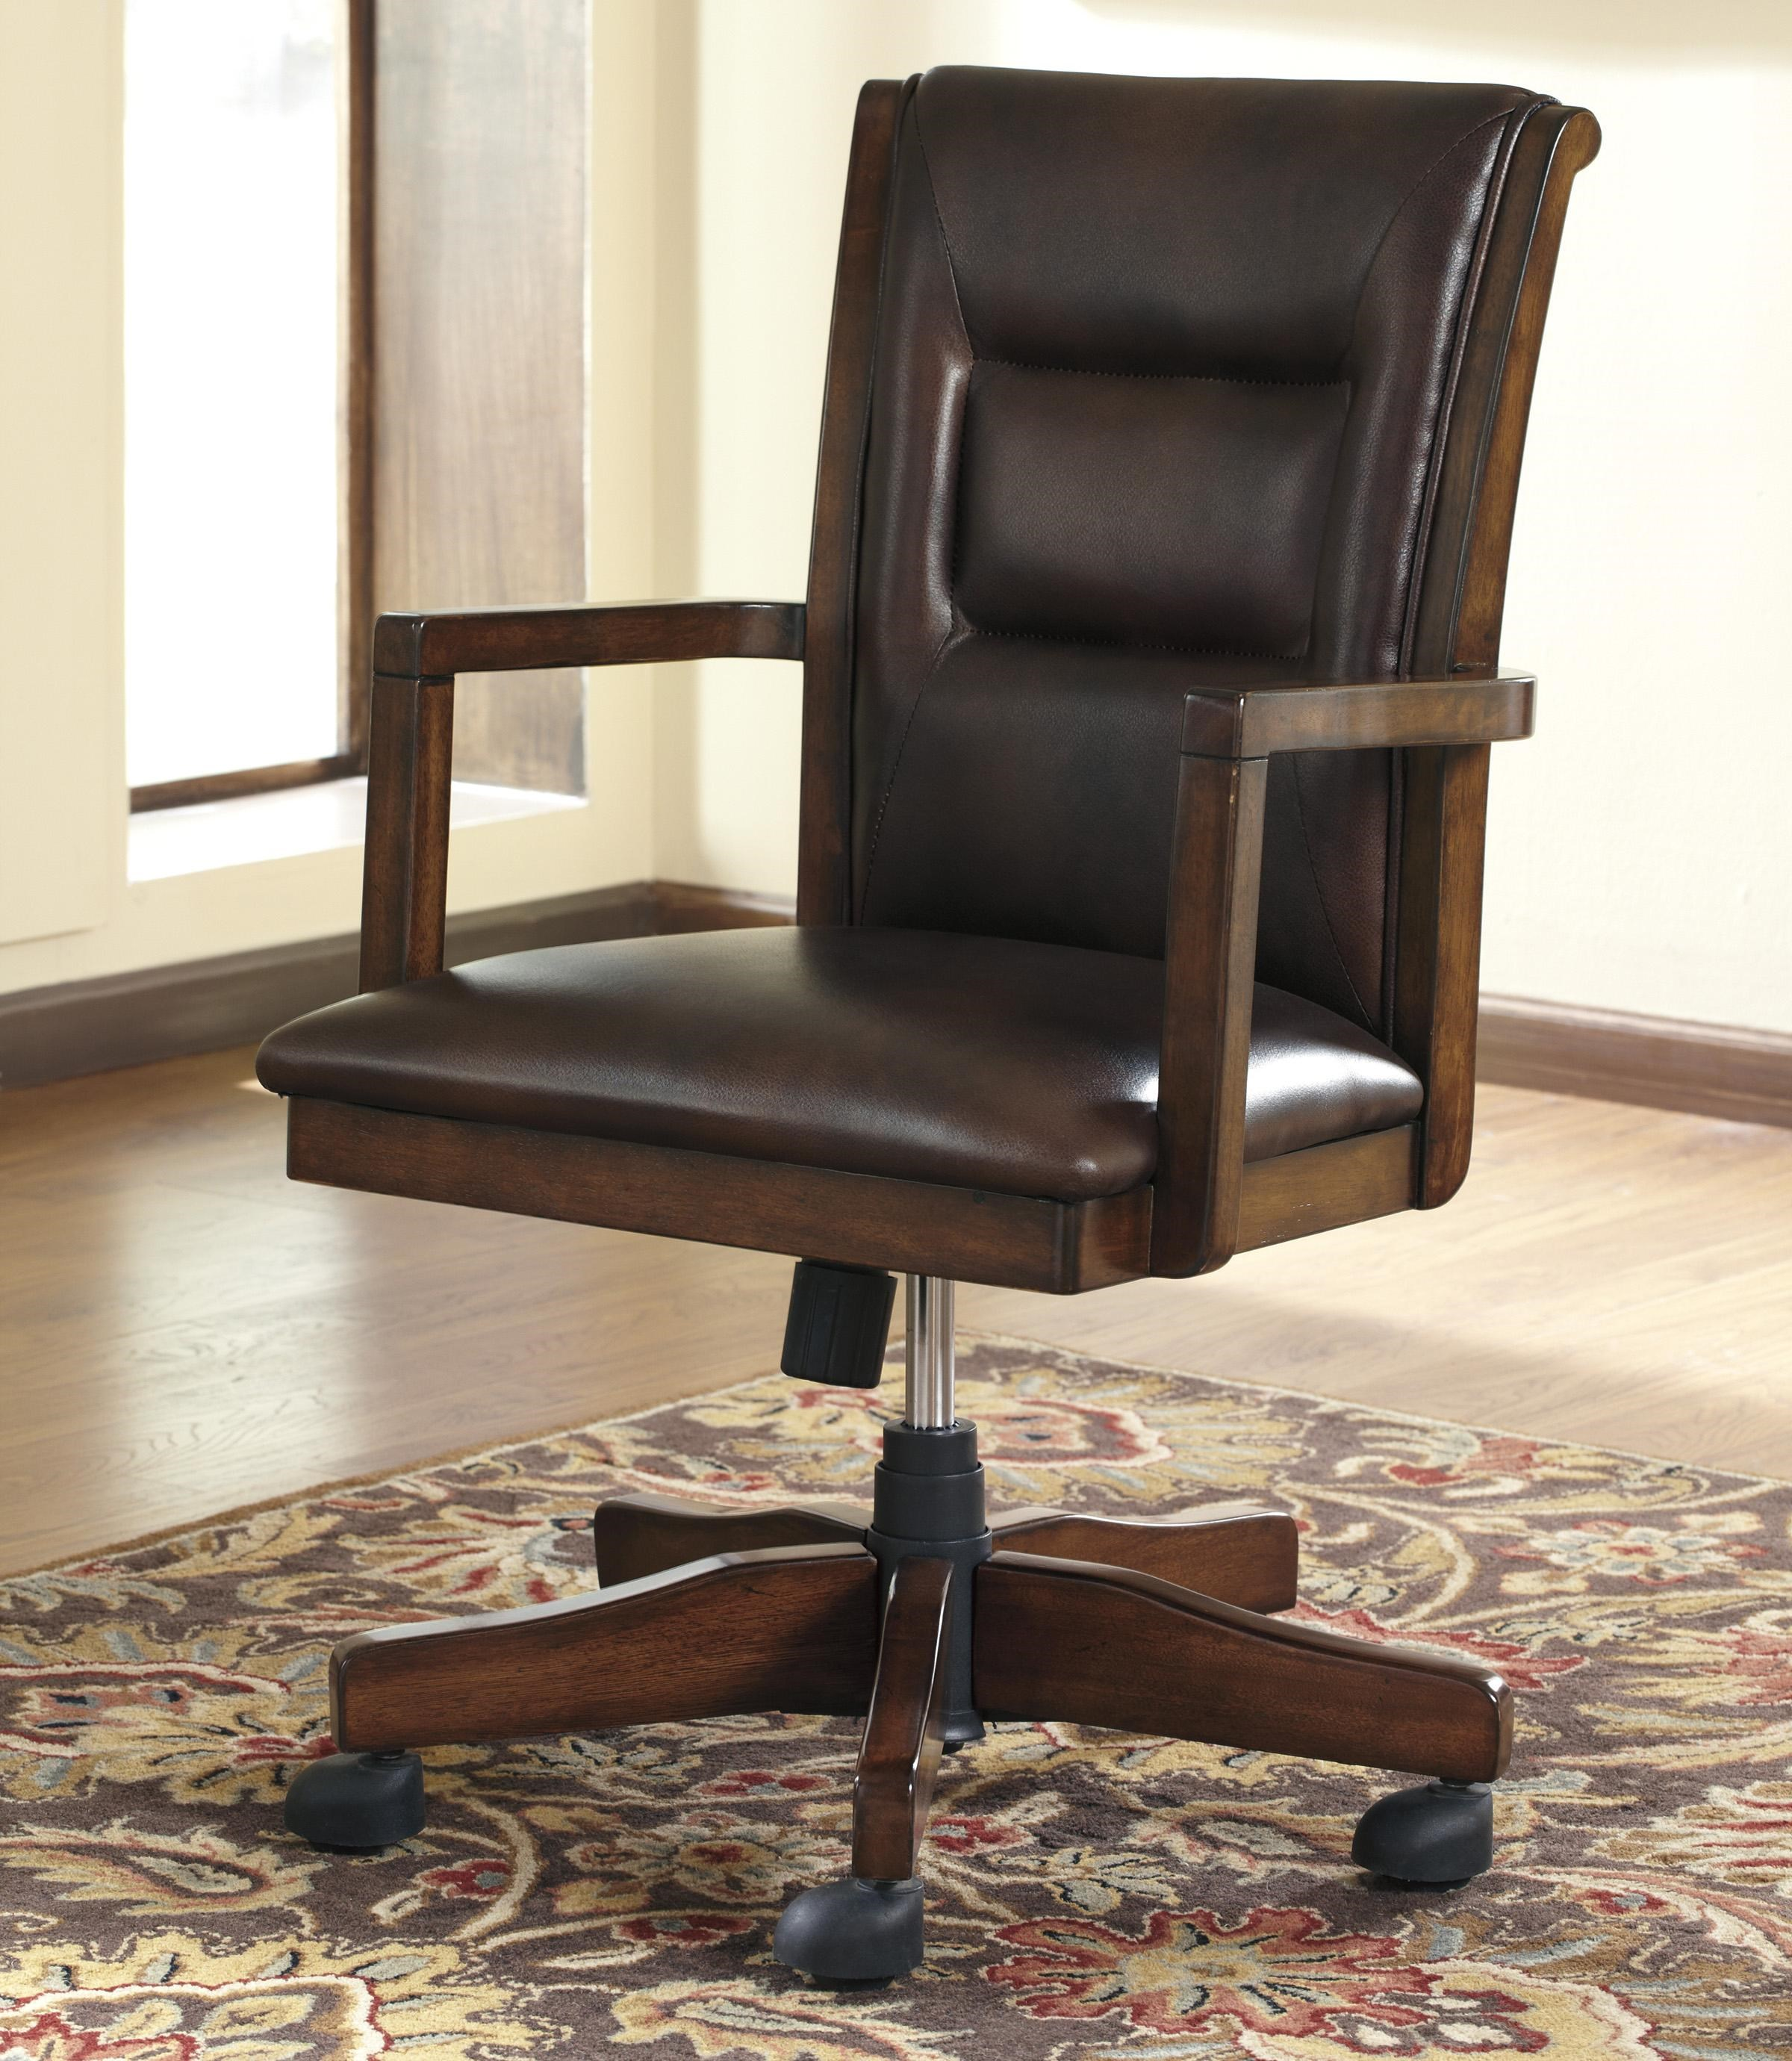 Ordinaire Signature Design By Ashley Devrik Home Office Desk Chair With Exposed Wood  Arms